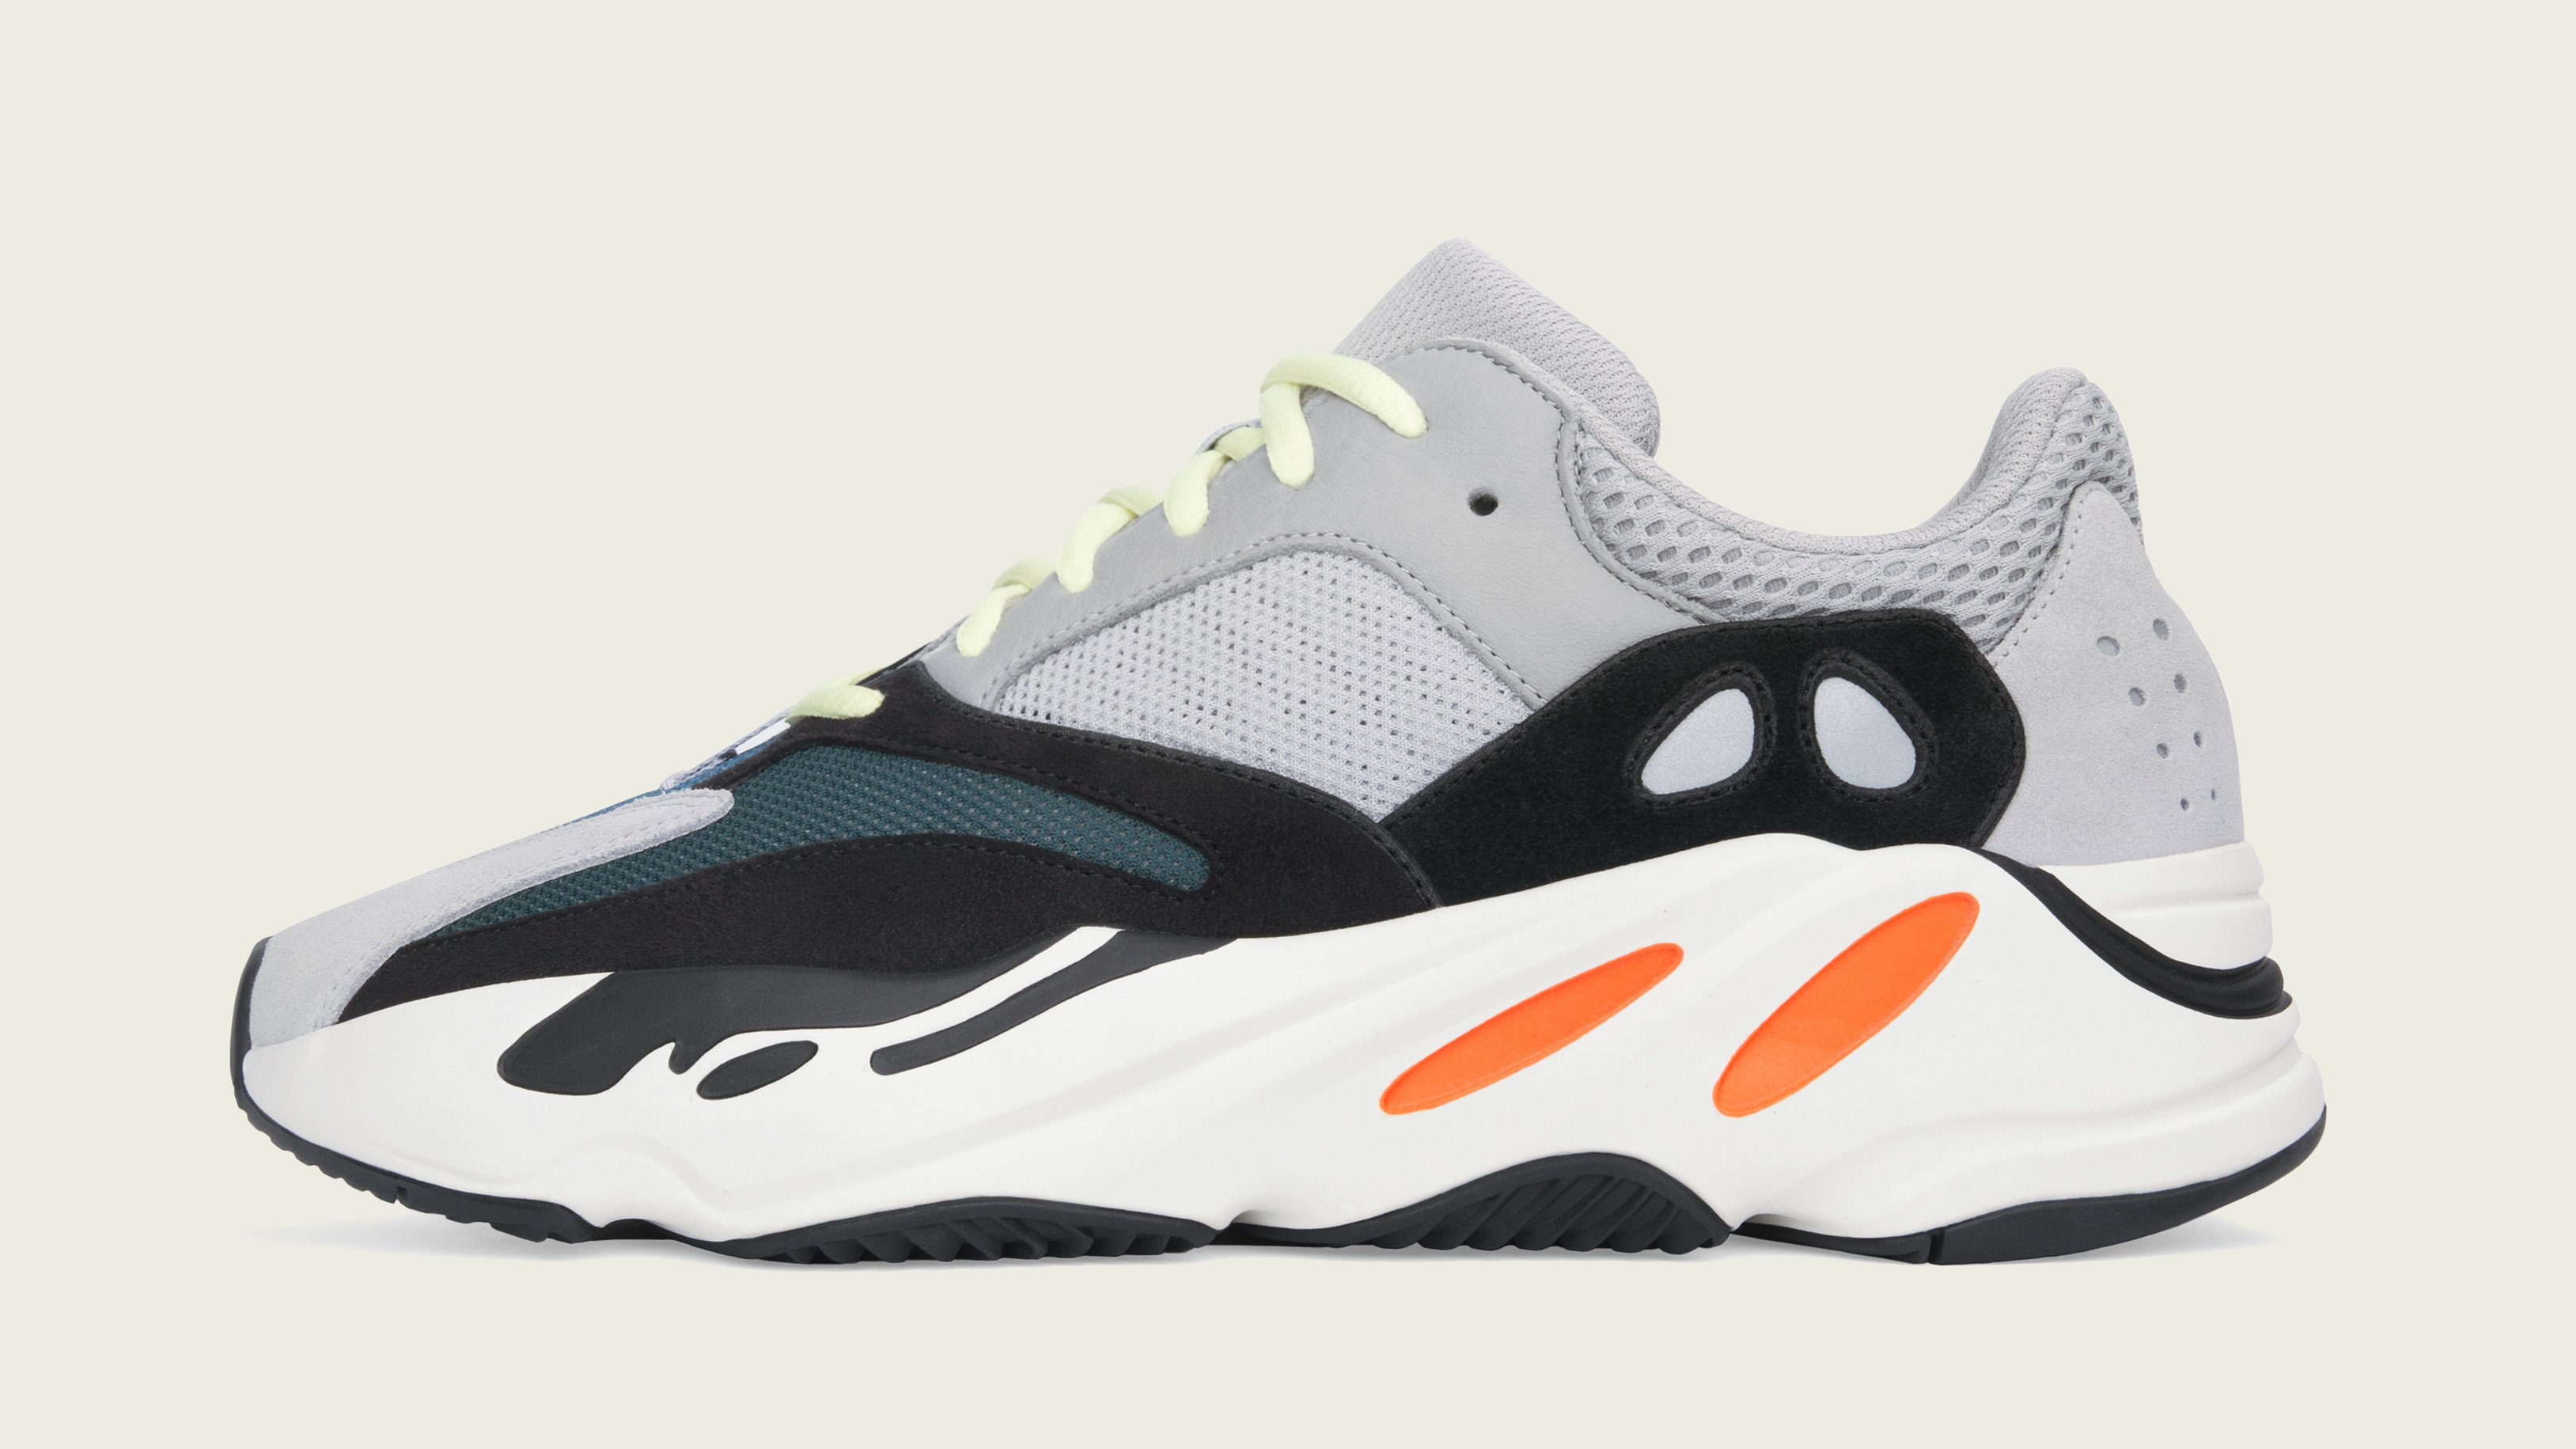 b797a8d54 Adidas Yeezy Boost 700  Wave Runner  B75571 September Restock